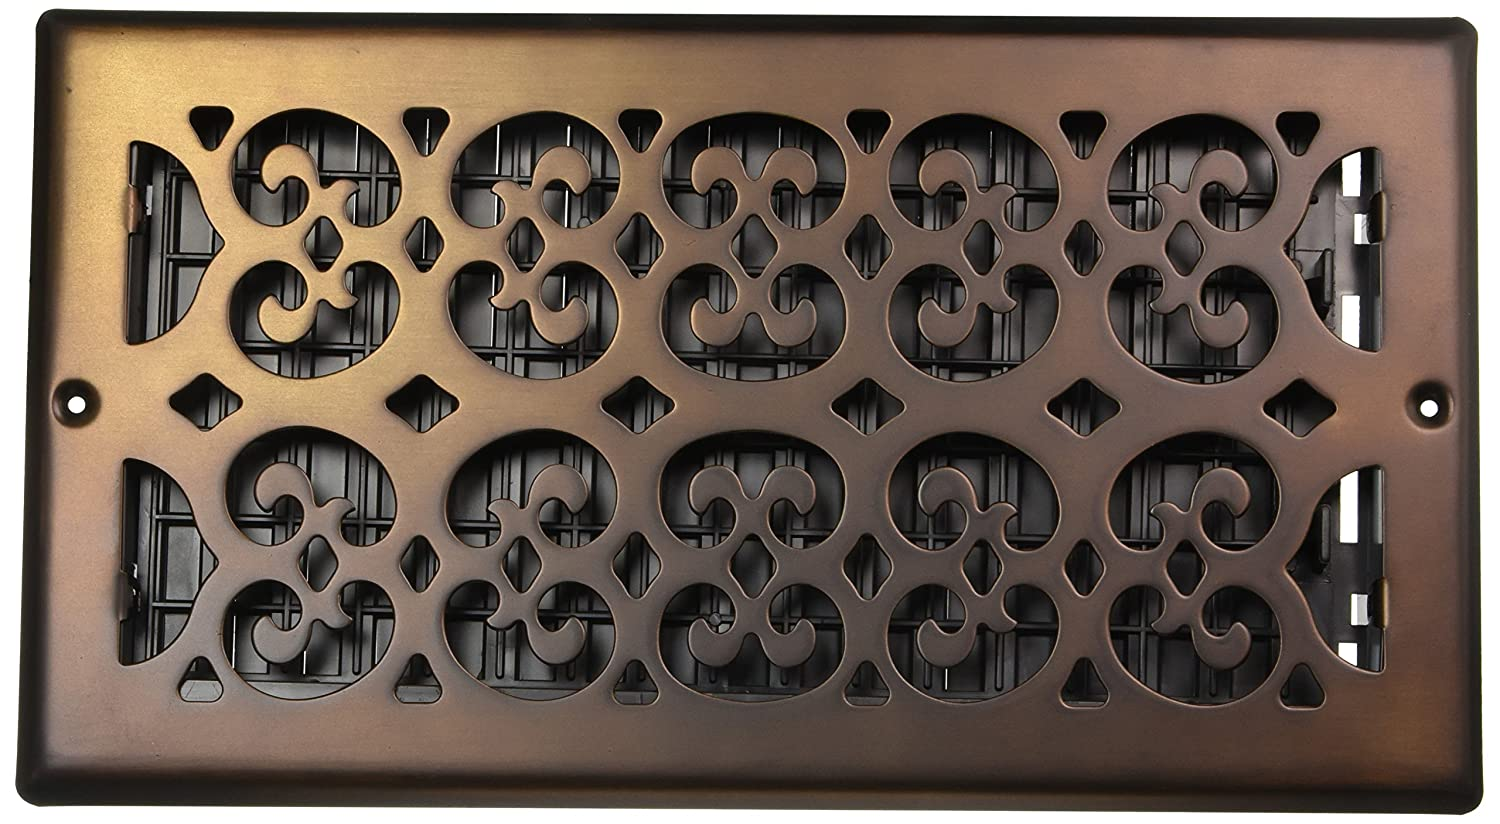 Decor Grates SP612W-RB Scroll Plated Register, 6-Inch by 12-Inch, Rubbed Bronze